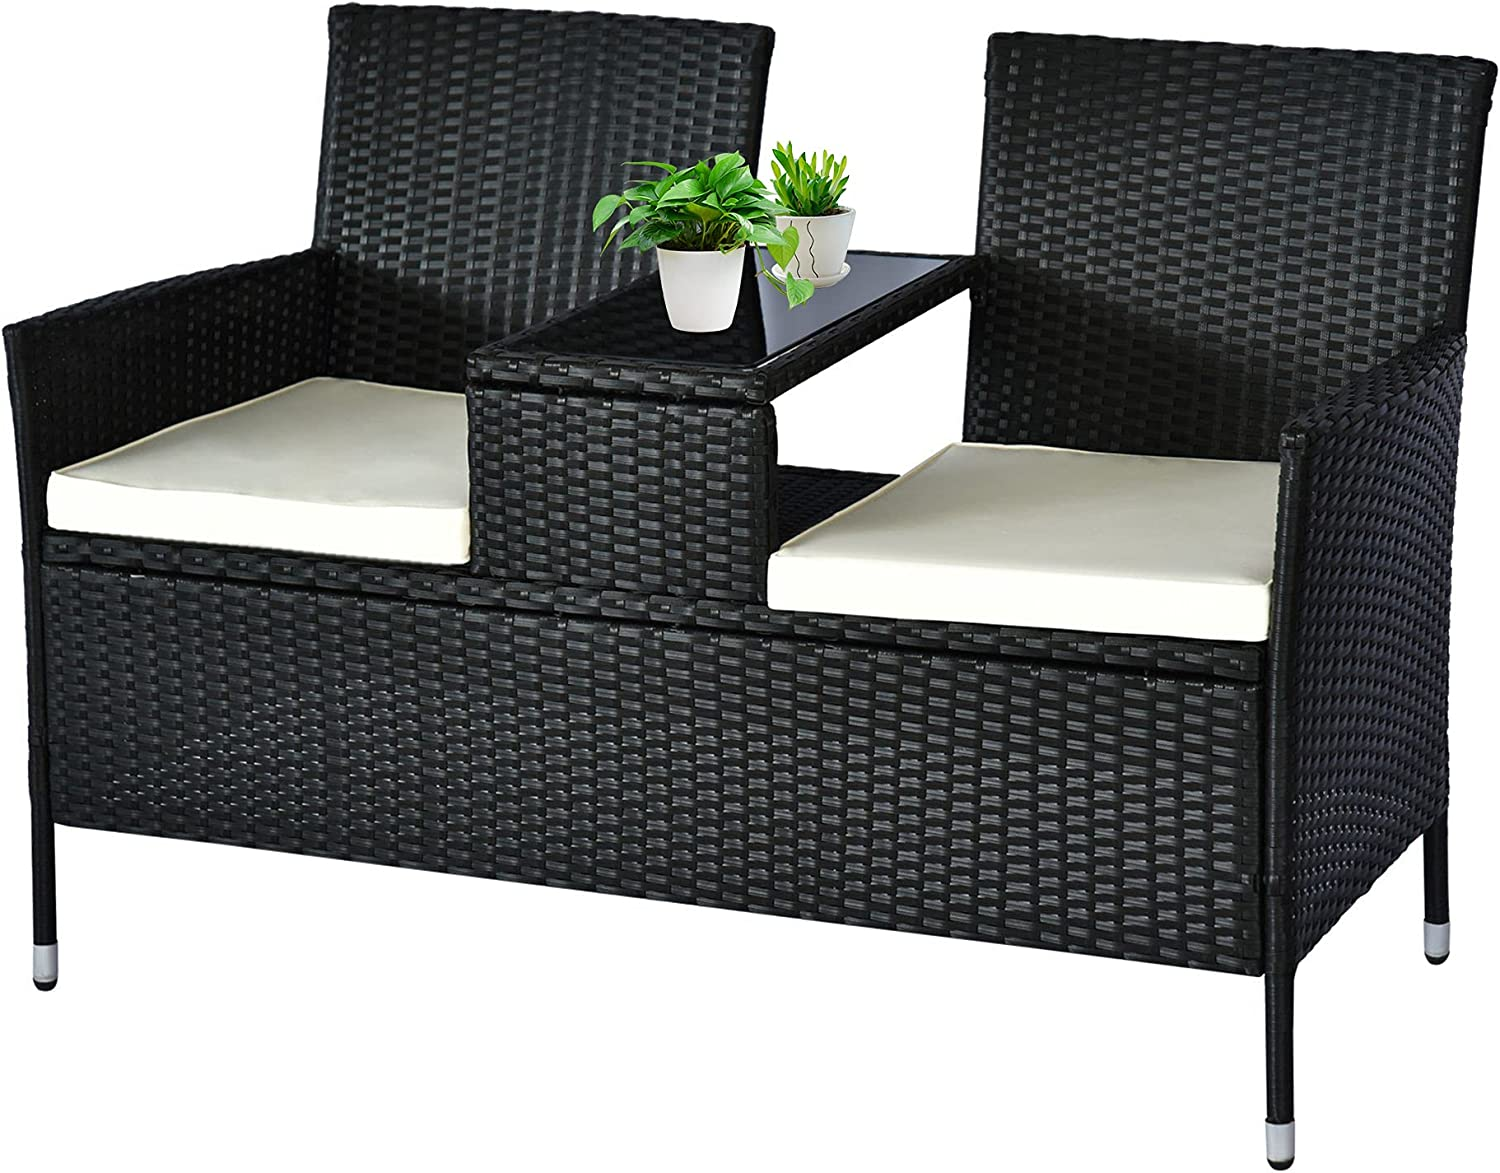 Outsunny Rattan Wicker Conversation Furniture Set with 2 Cushioned Seat & Built-in Coffee Table with Tempered Glass Top, Modern Loveseat for Garden Lawn Backyard Porch, Black